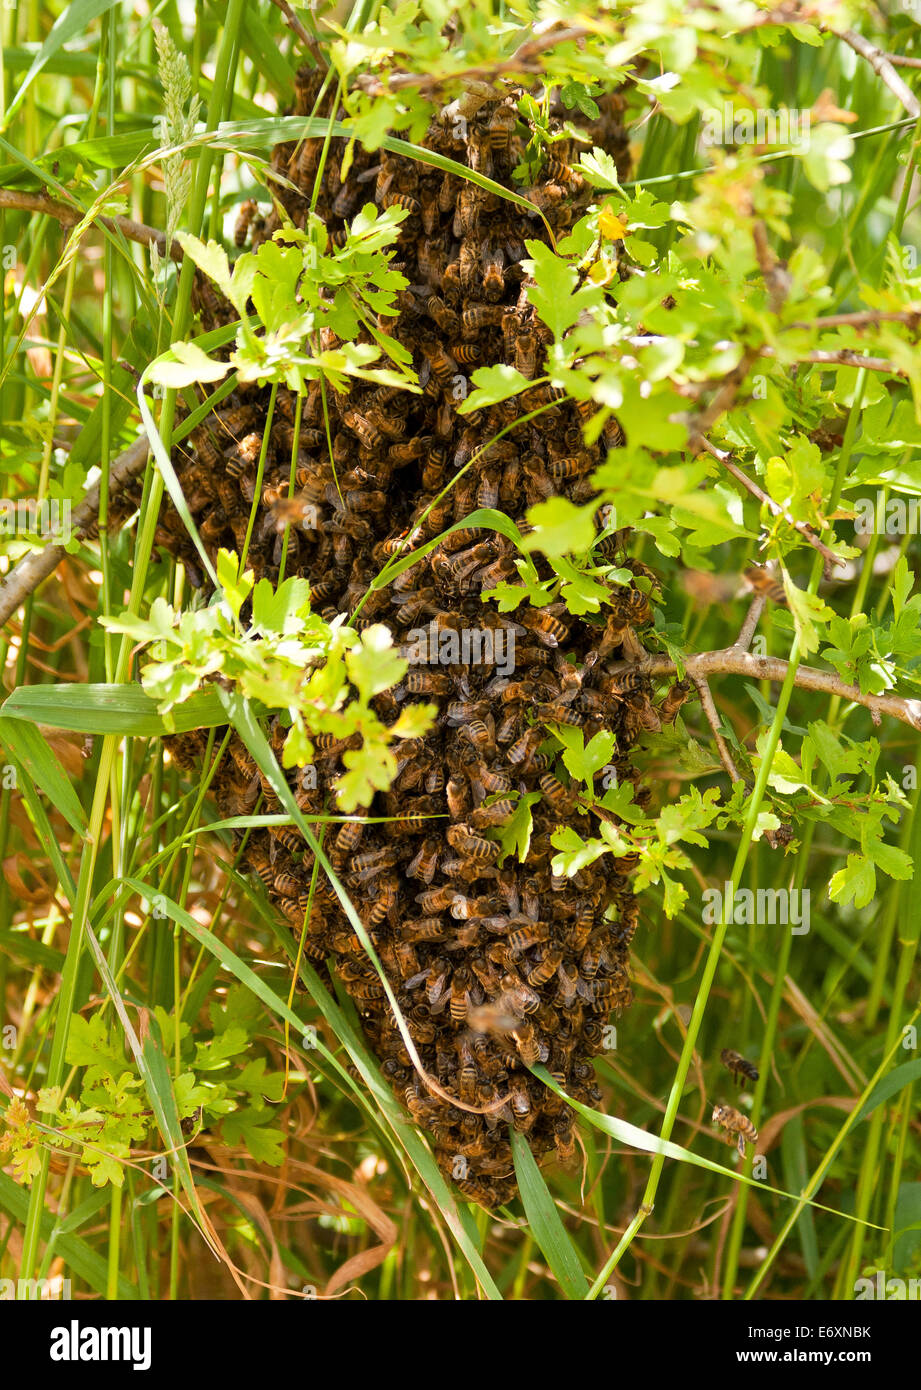 Honey Bees swarming in a Hawthorn Hedge at Hainford, Norfolk, UK - Stock Image